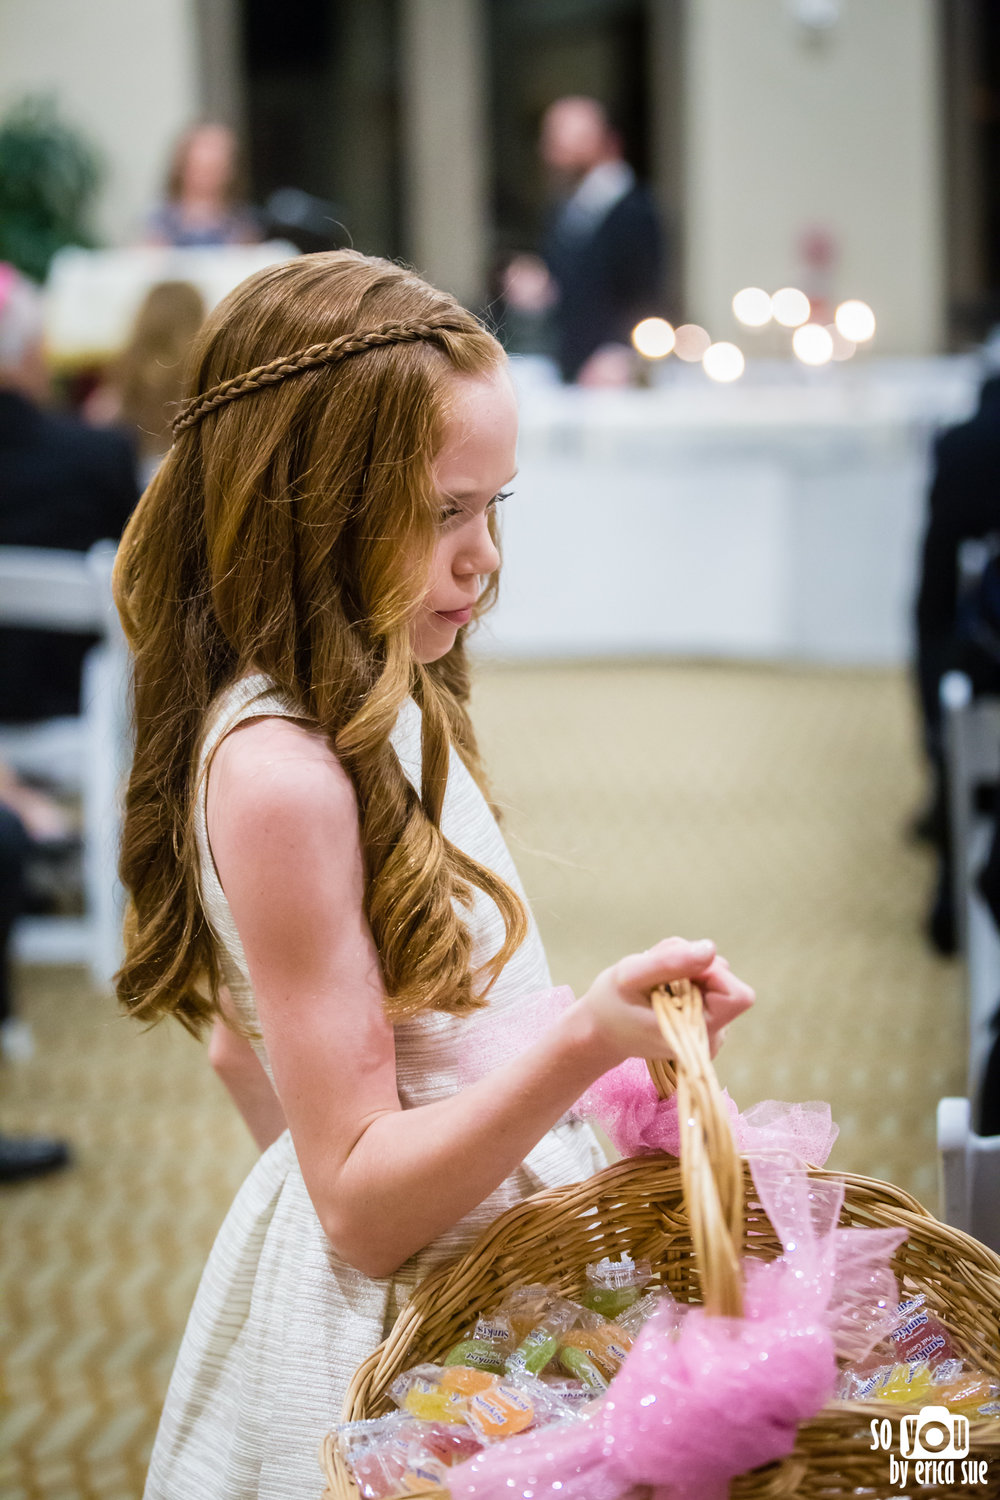 parkland-fl-mitzvah-photography-so-you-by-erica-sue-9972.jpg